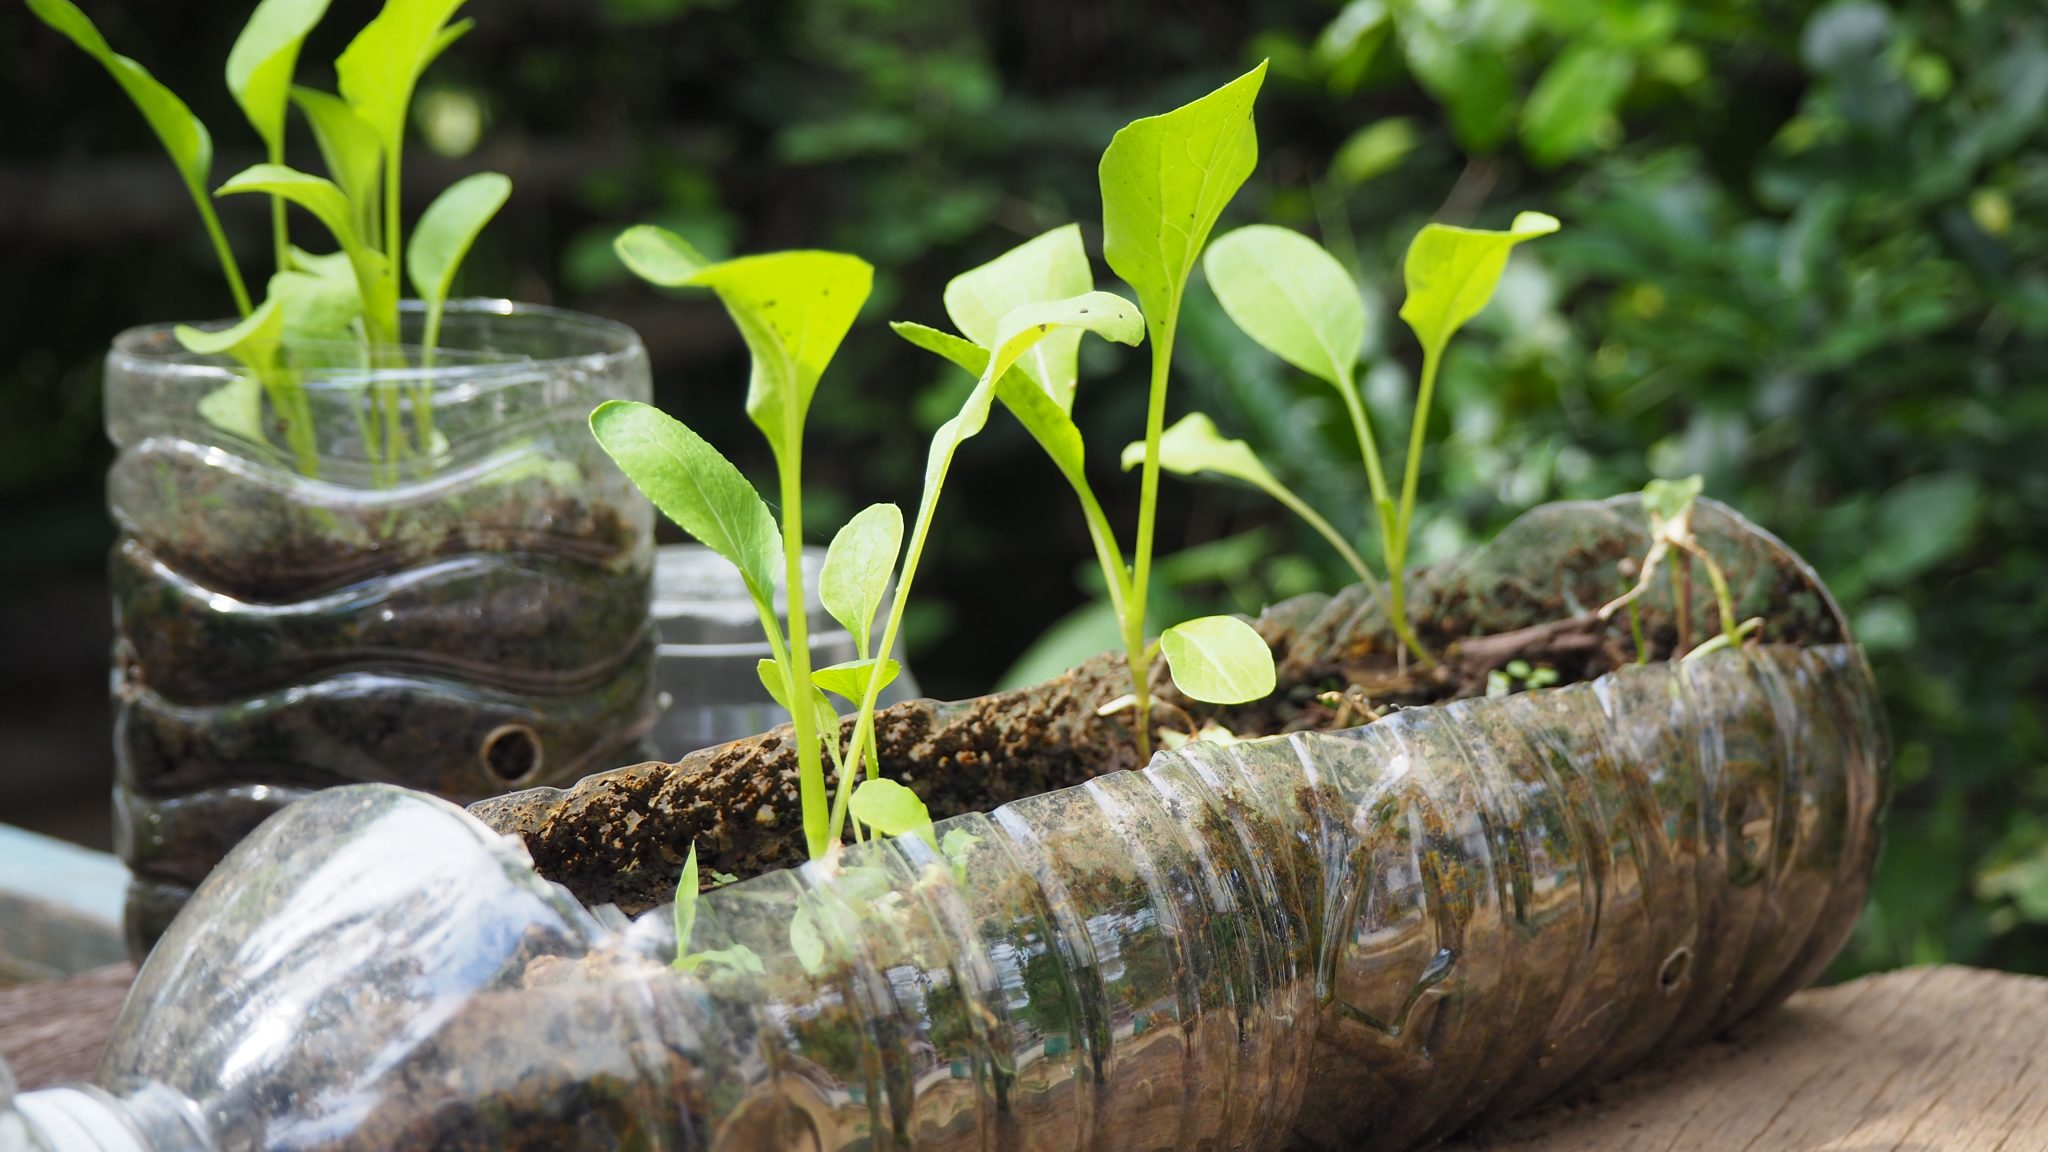 Recycling materials used for seed starter